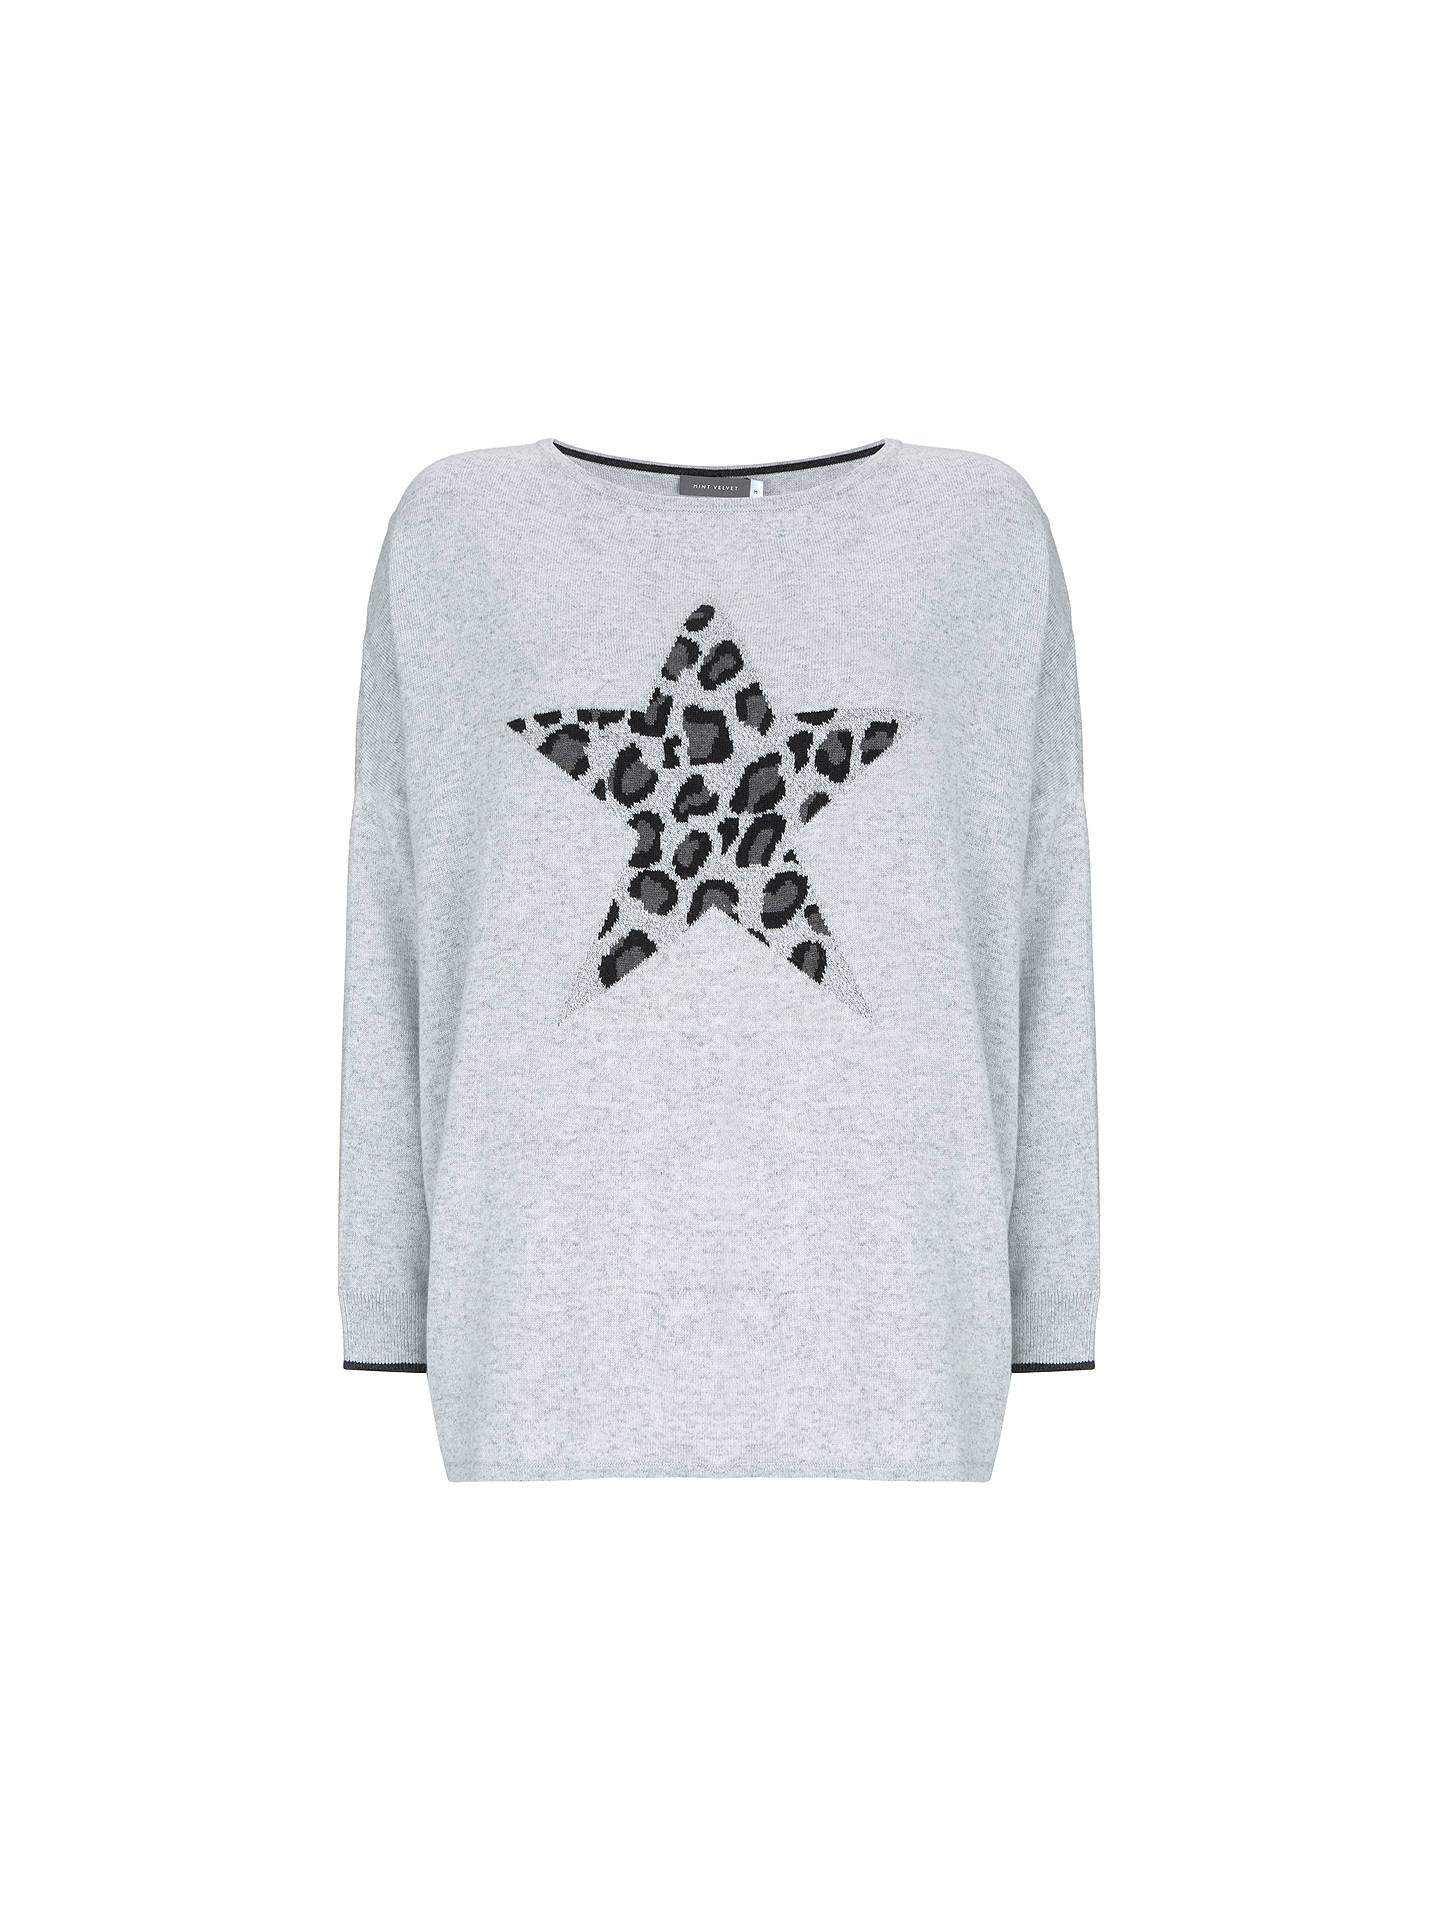 ... BuyMint Velvet Animal Star Knit Jumper 5a935b5c28cb